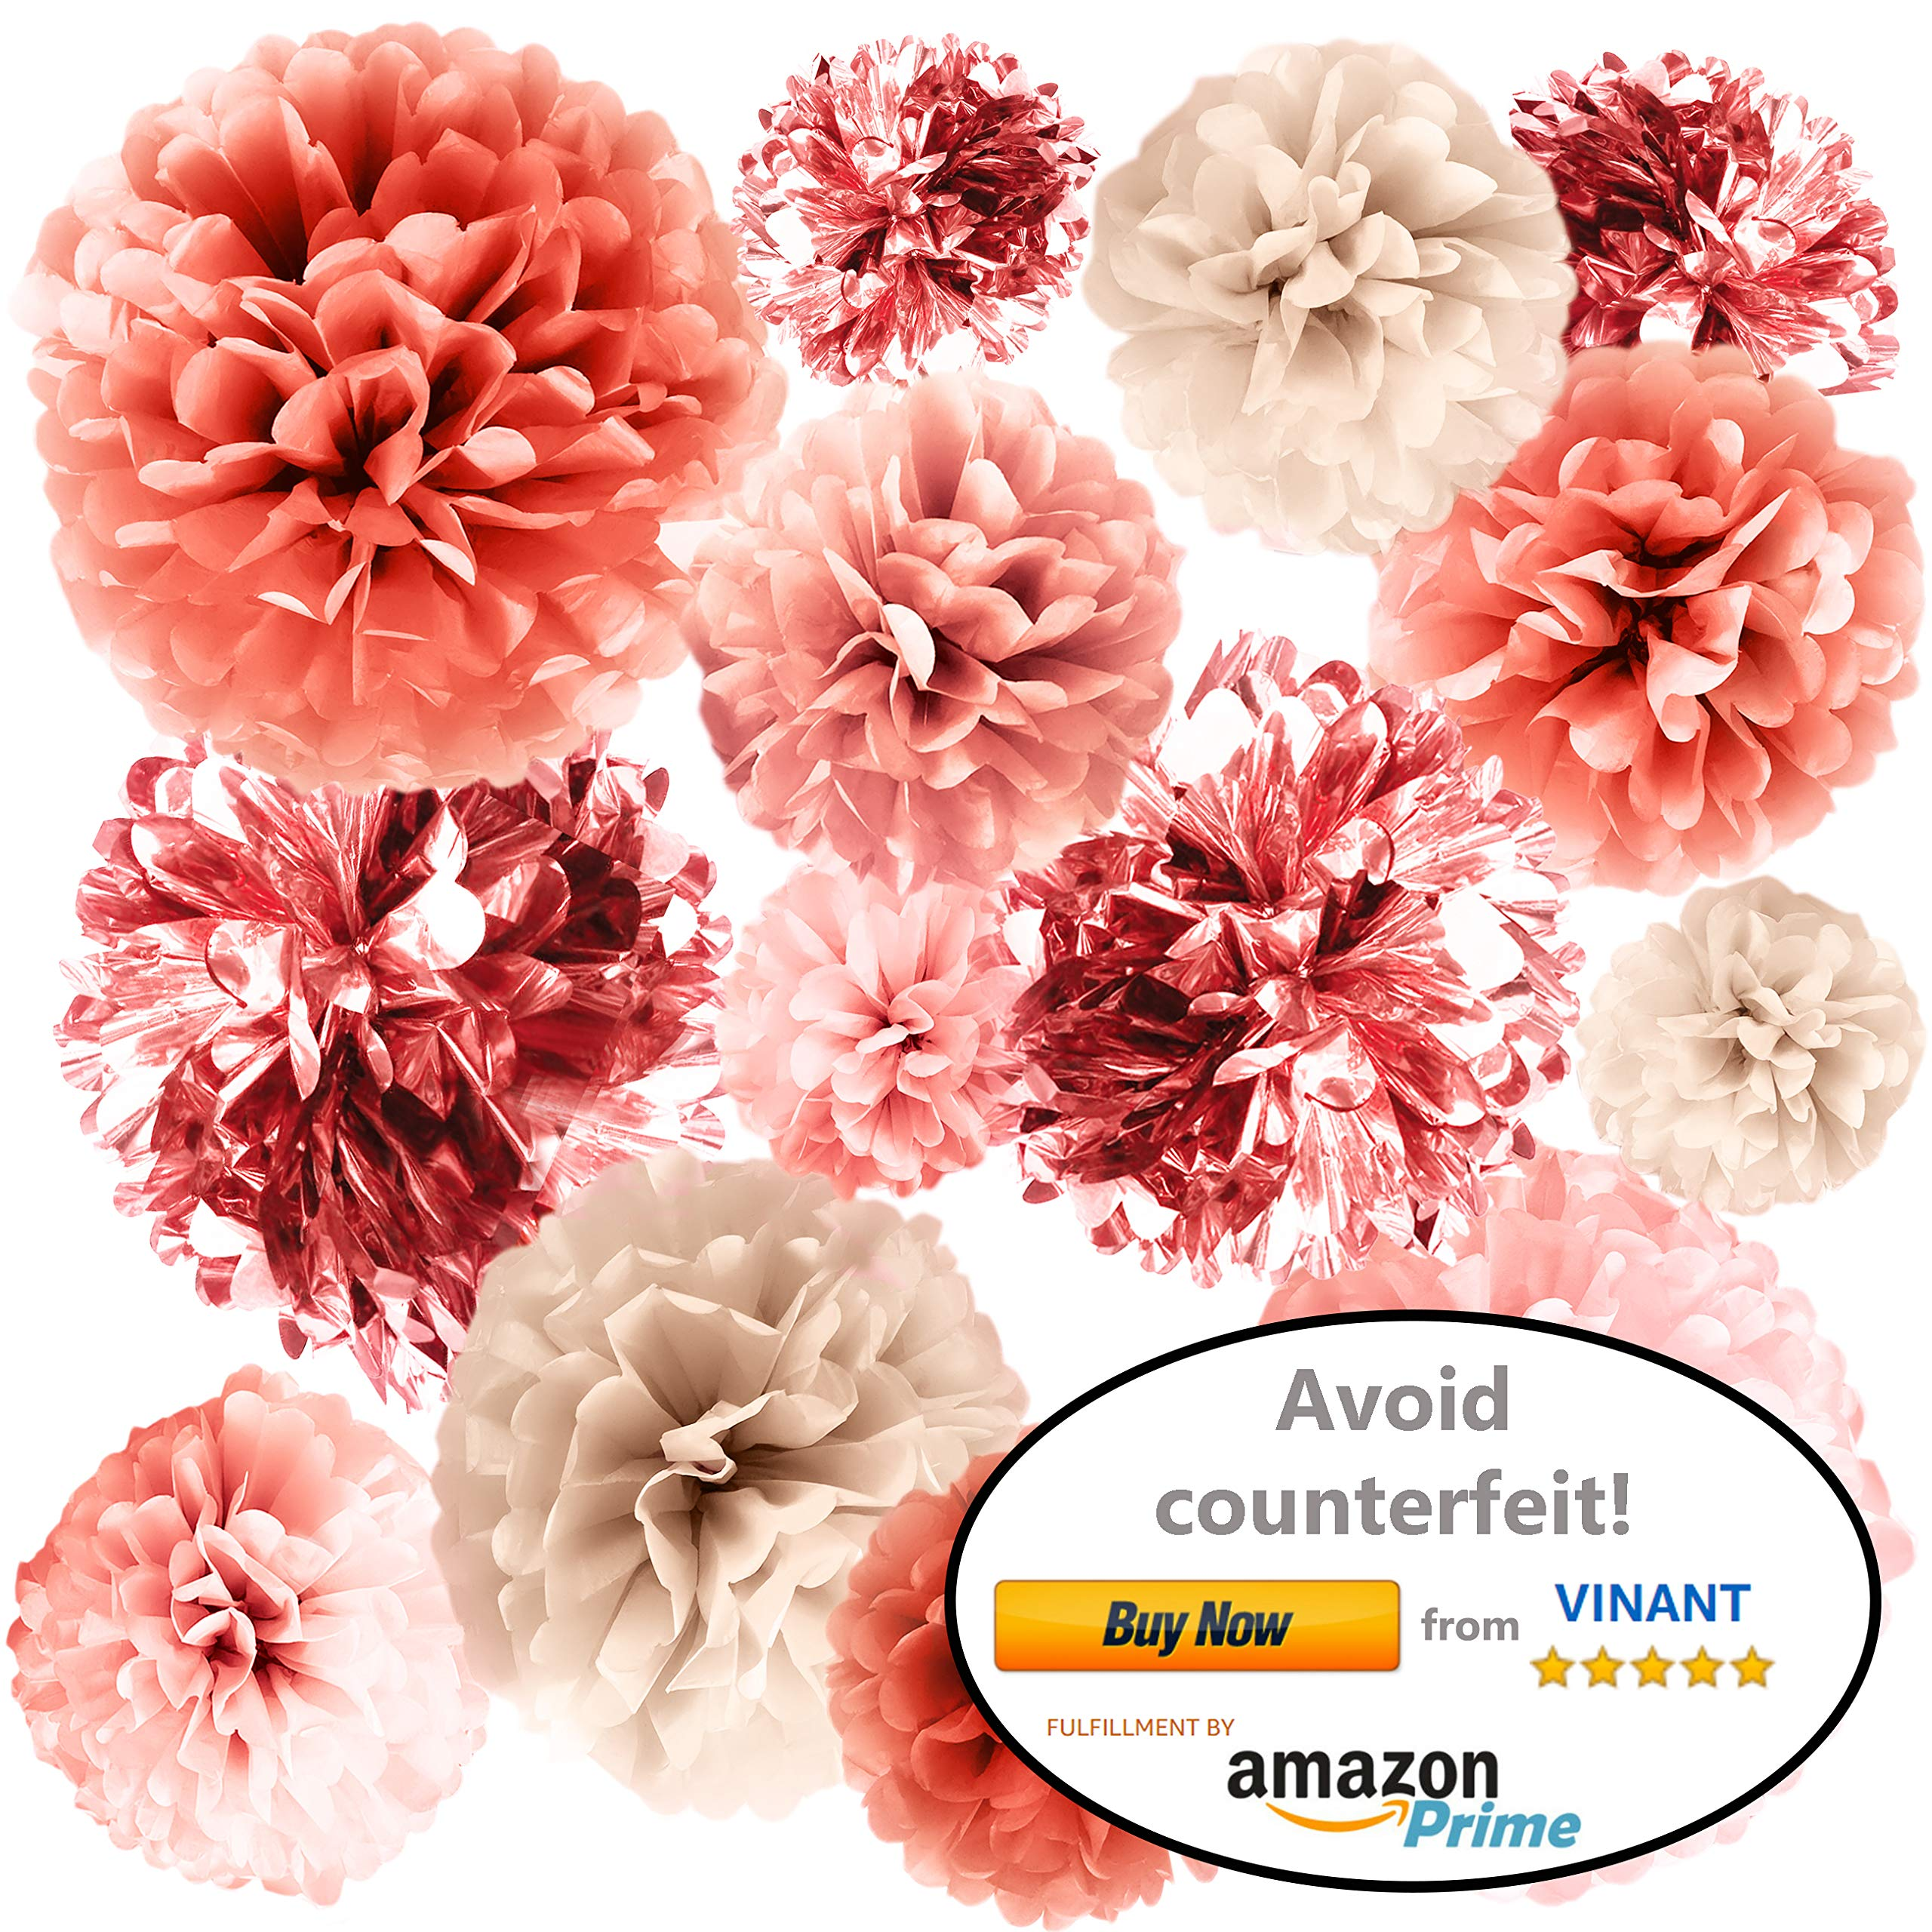 VINANT 20 PCS Rose Gold Party Decorations - Metallic Foil and Tissue Paper Pom Poms - Baby Shower - Bridal Shower - Wedding - Bachelorette - Birthday Party - 14'', 10'', 8'', 6'' by VINANT